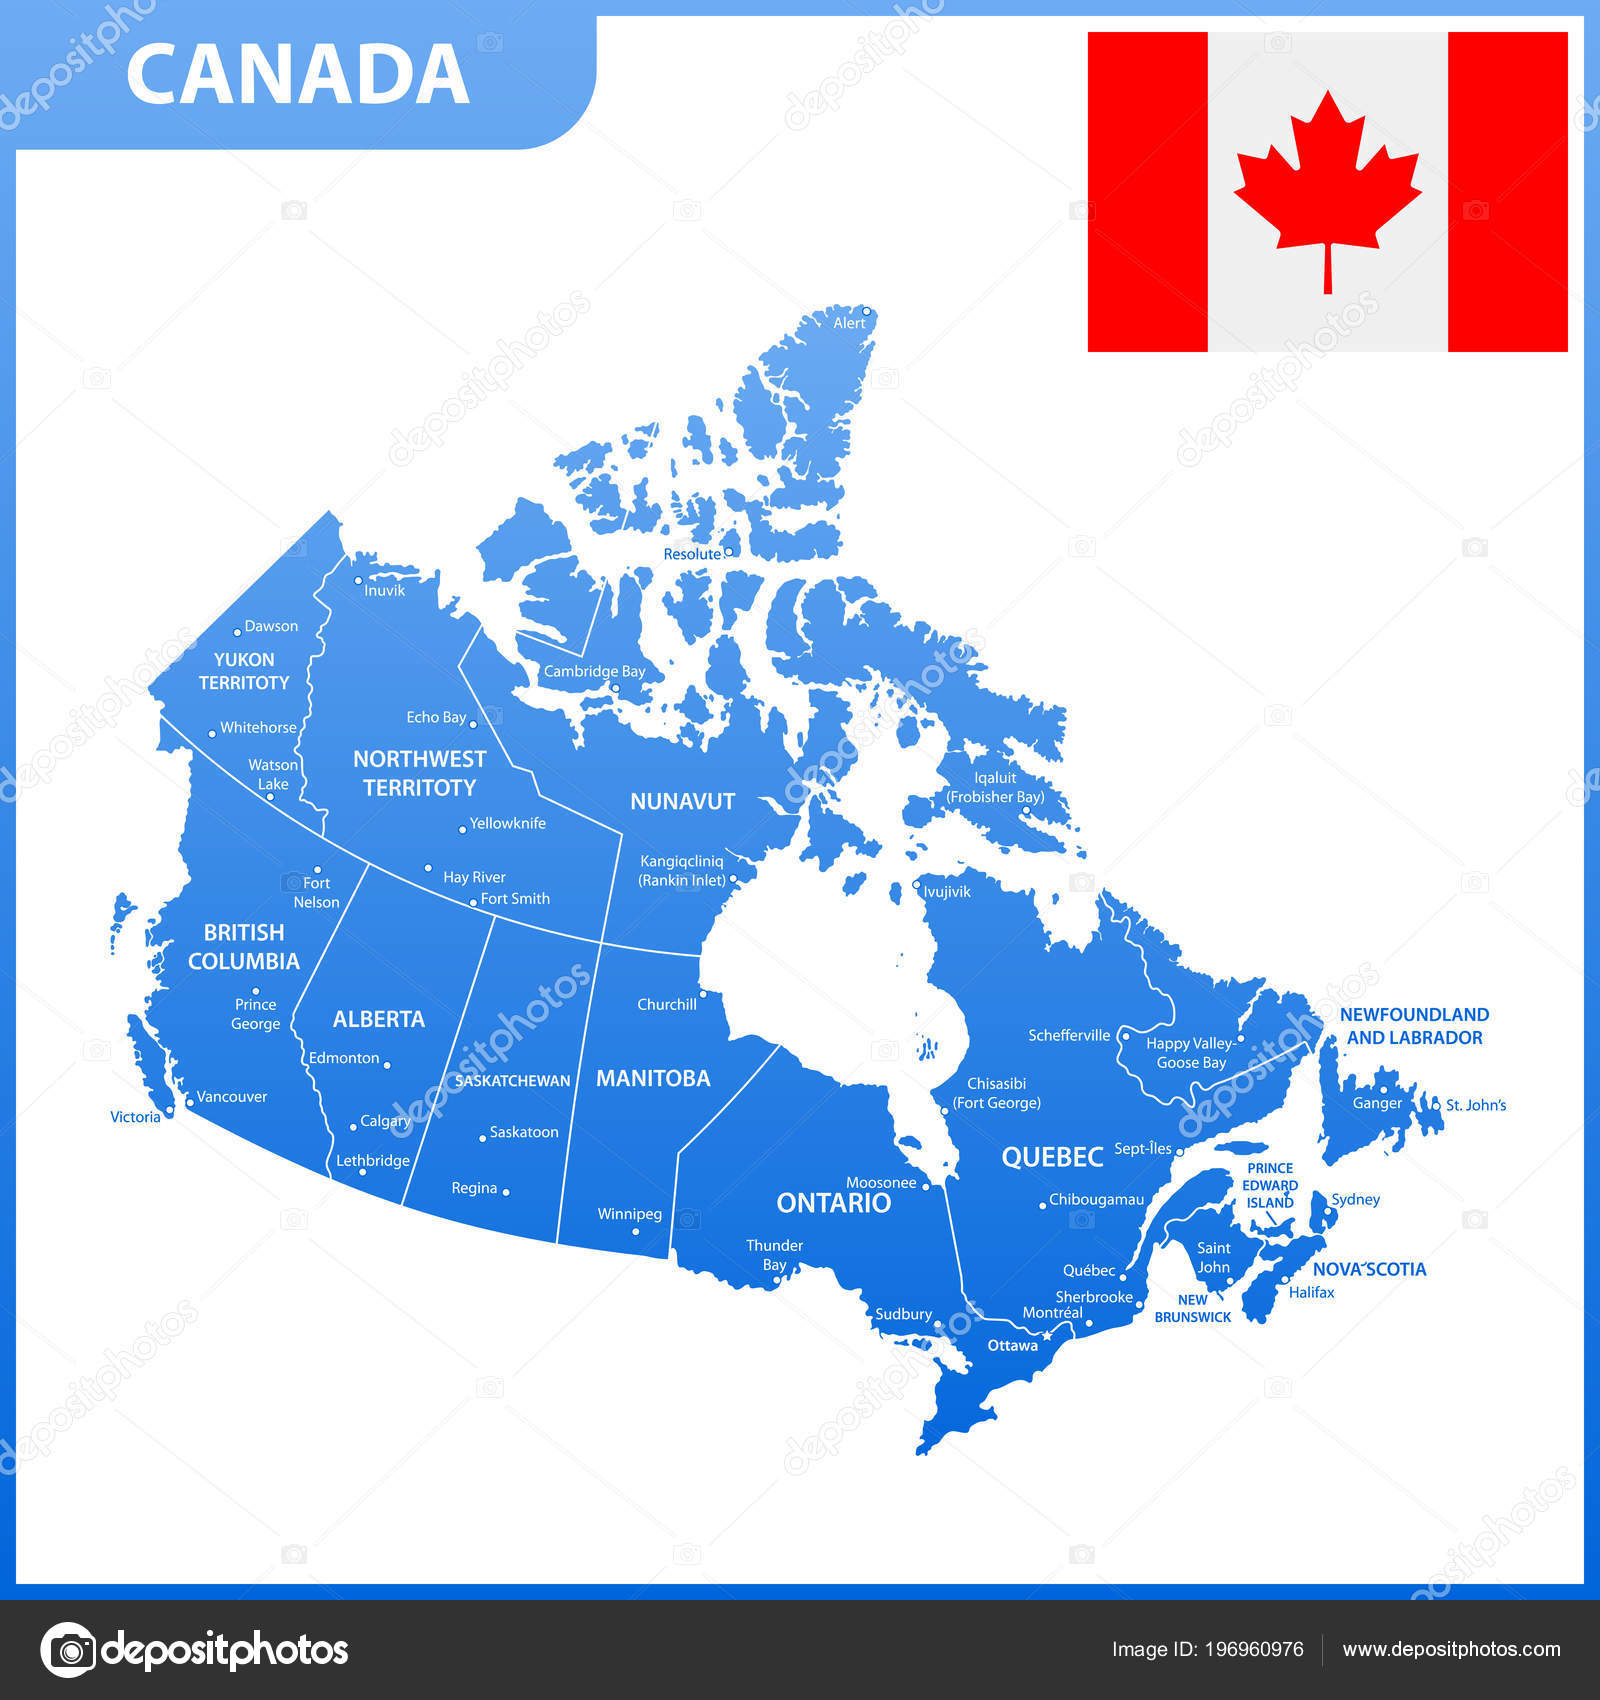 Map Of Canada With Cities And States.Detailed Map Canada Regions States Cities Capitals Stock Vector